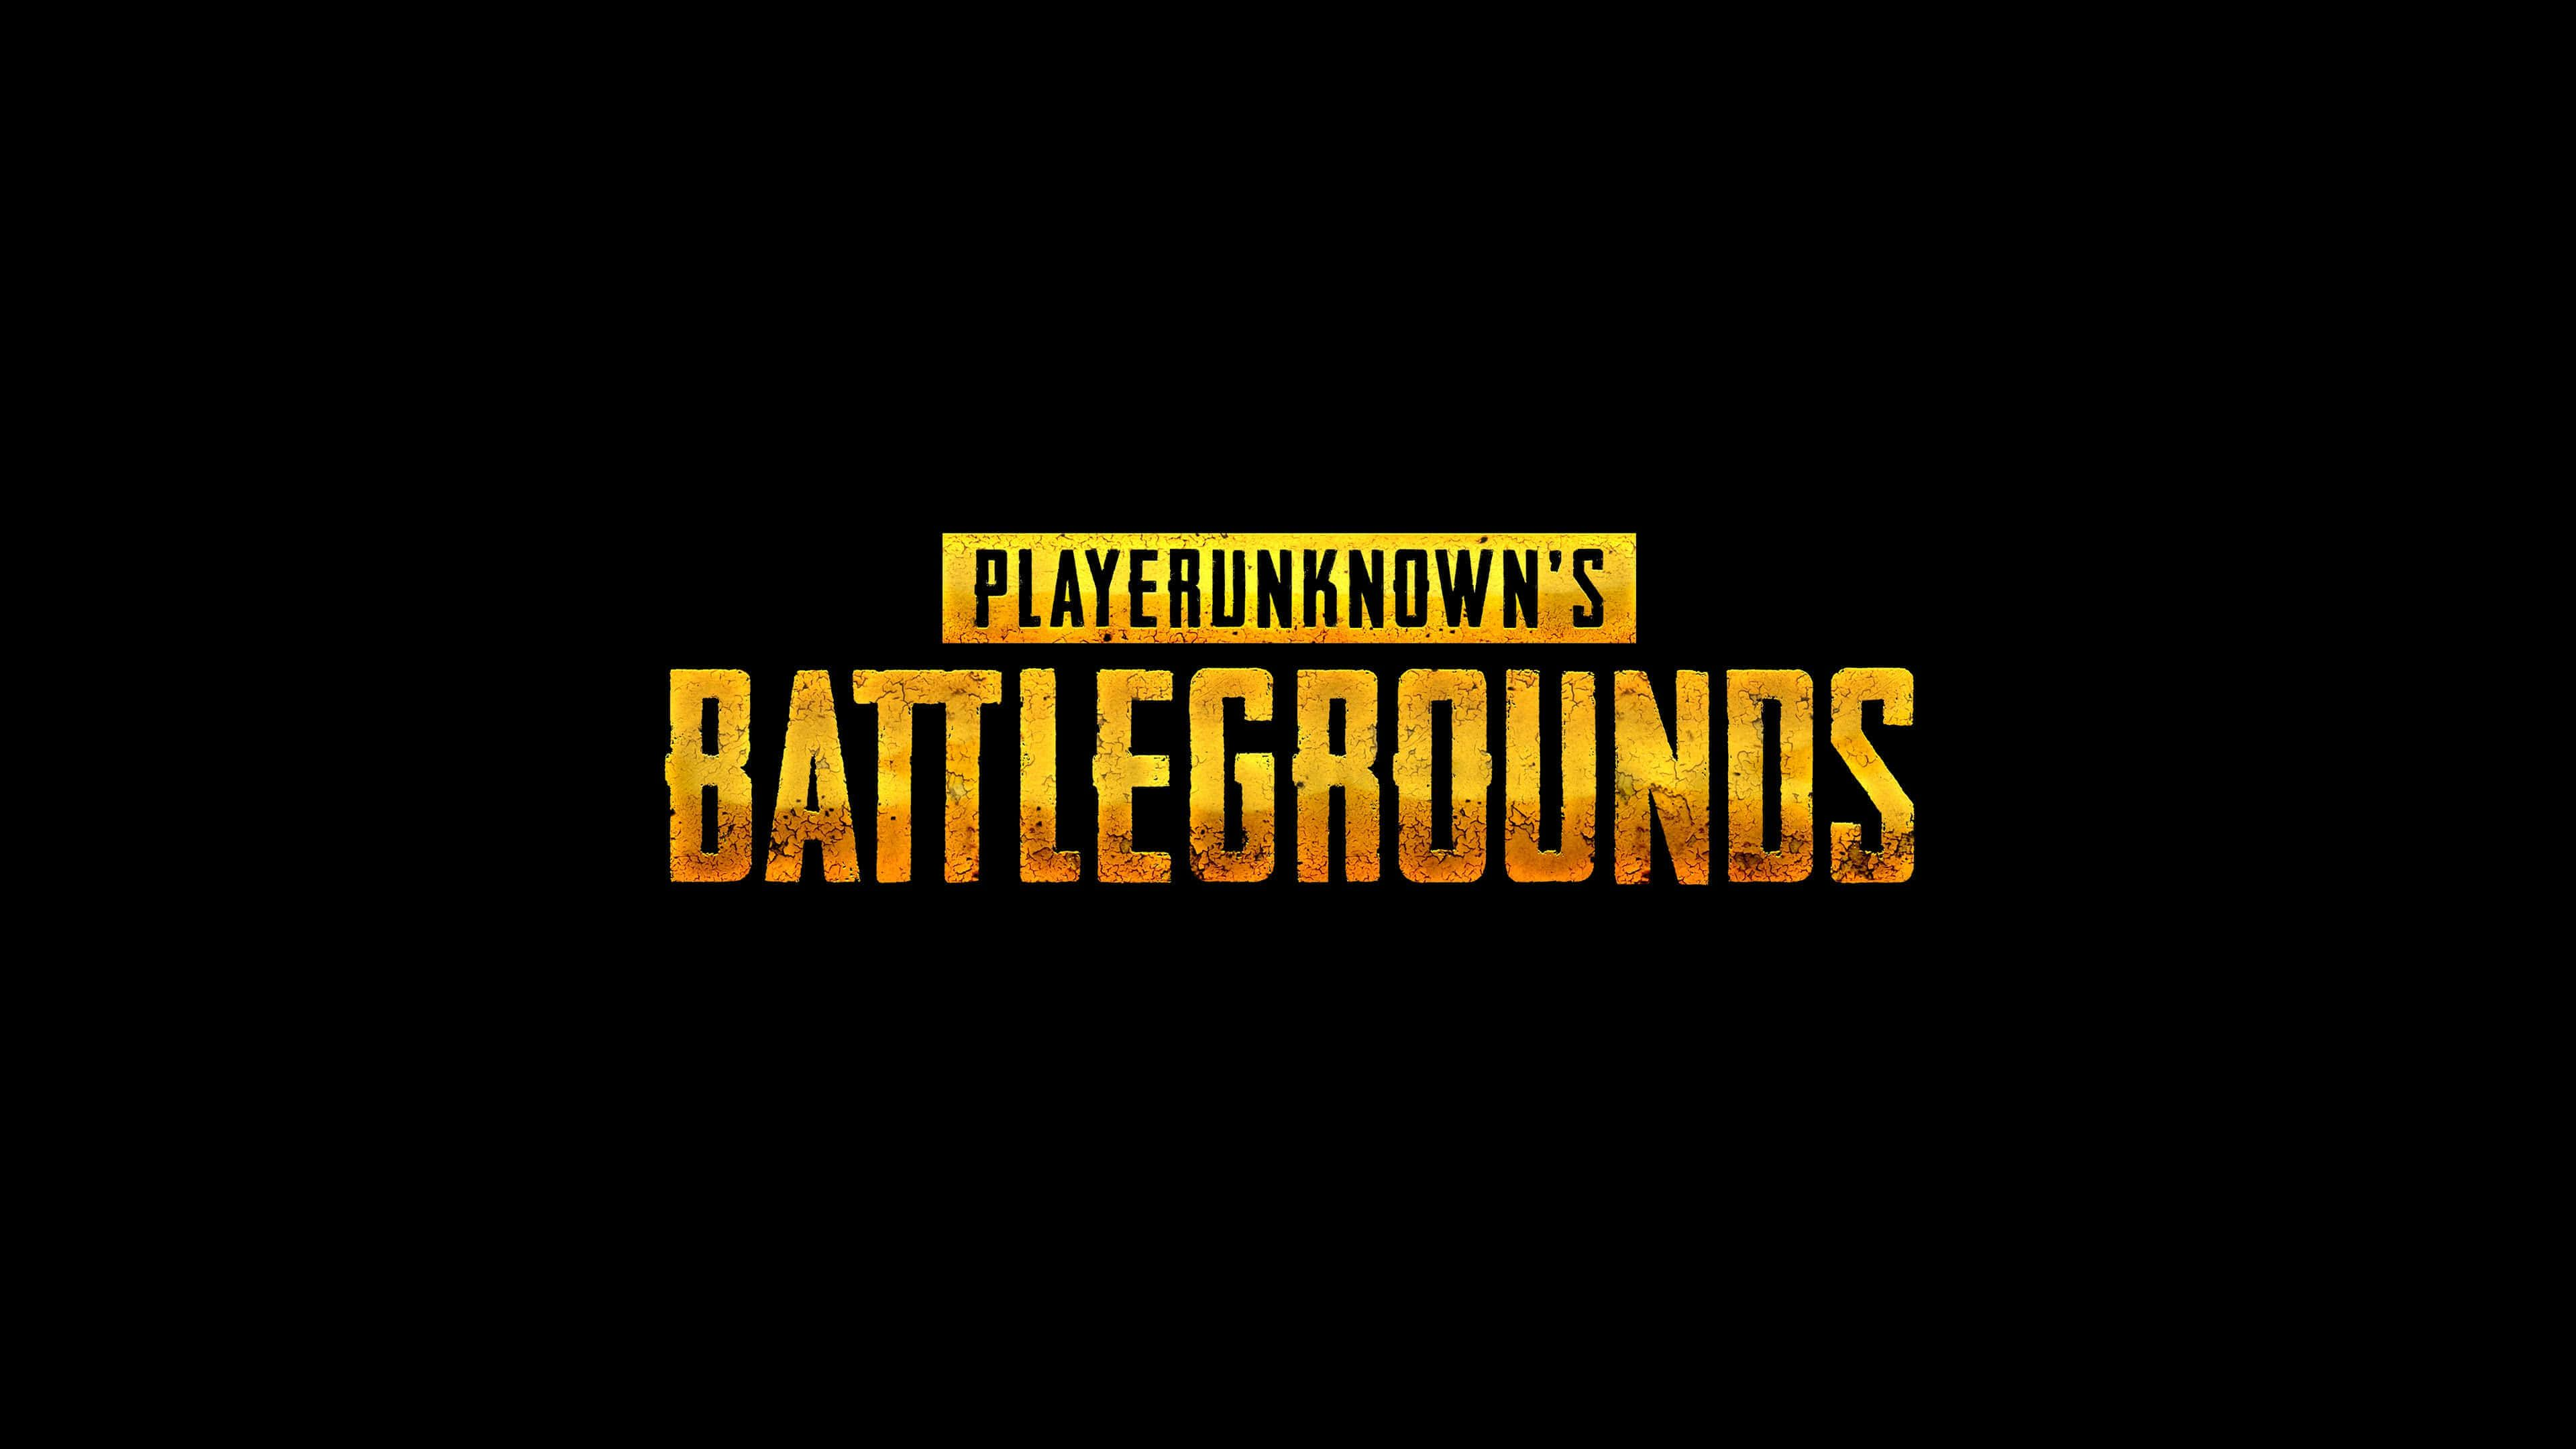 Wallpaper 4k Player Unknown S Battlegrounds Pubg 4k Logo Player